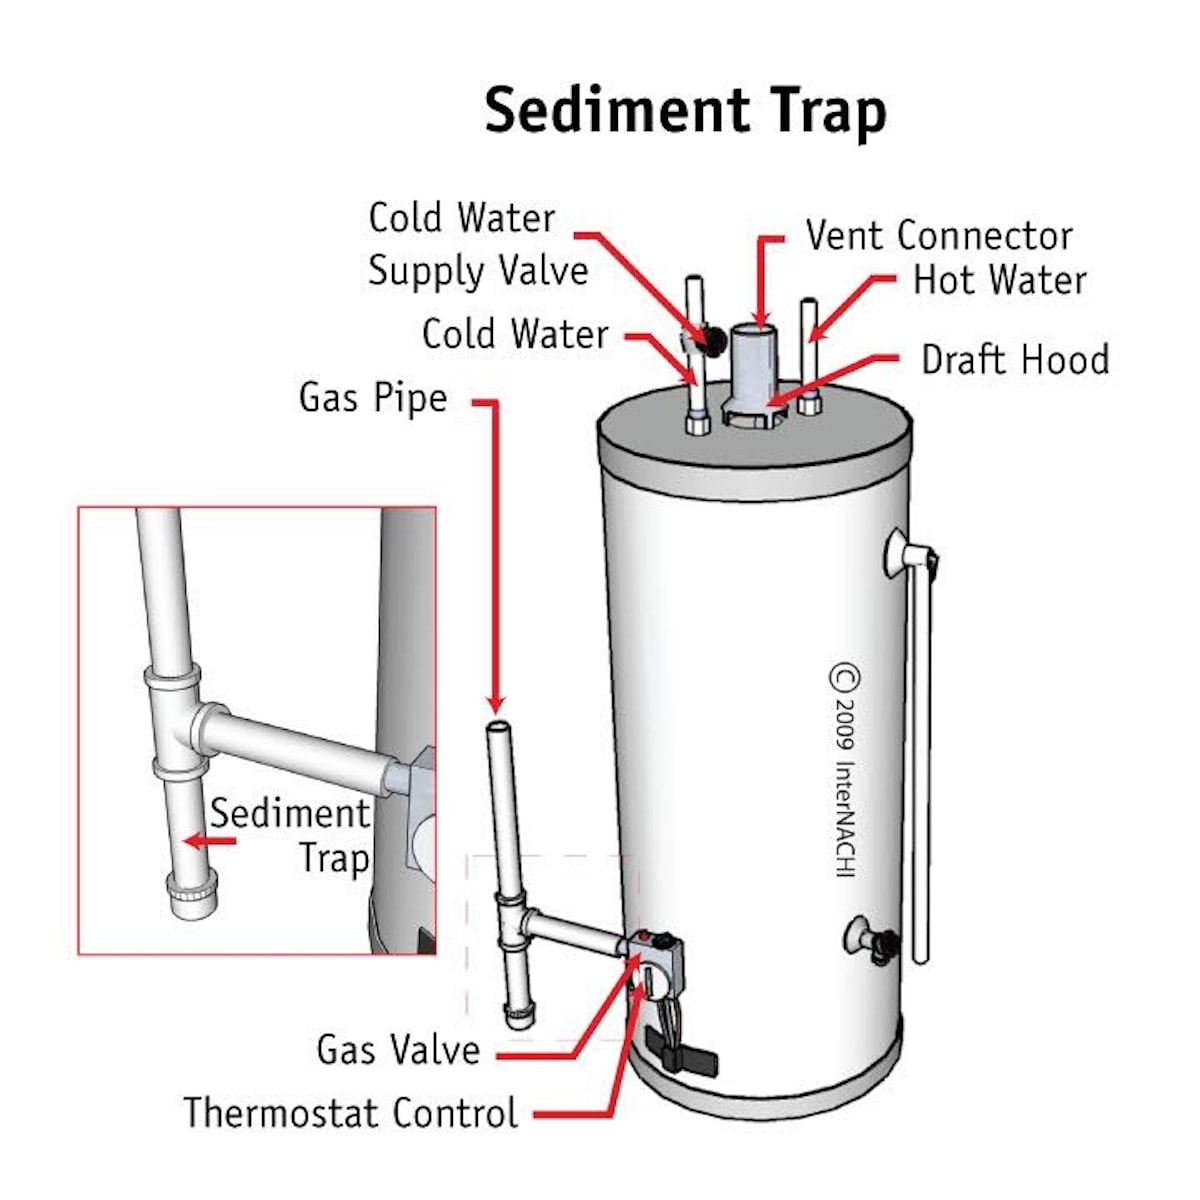 This is a gas-fired hot water heater tank with a sediment trap at the gas piping next to the tank.